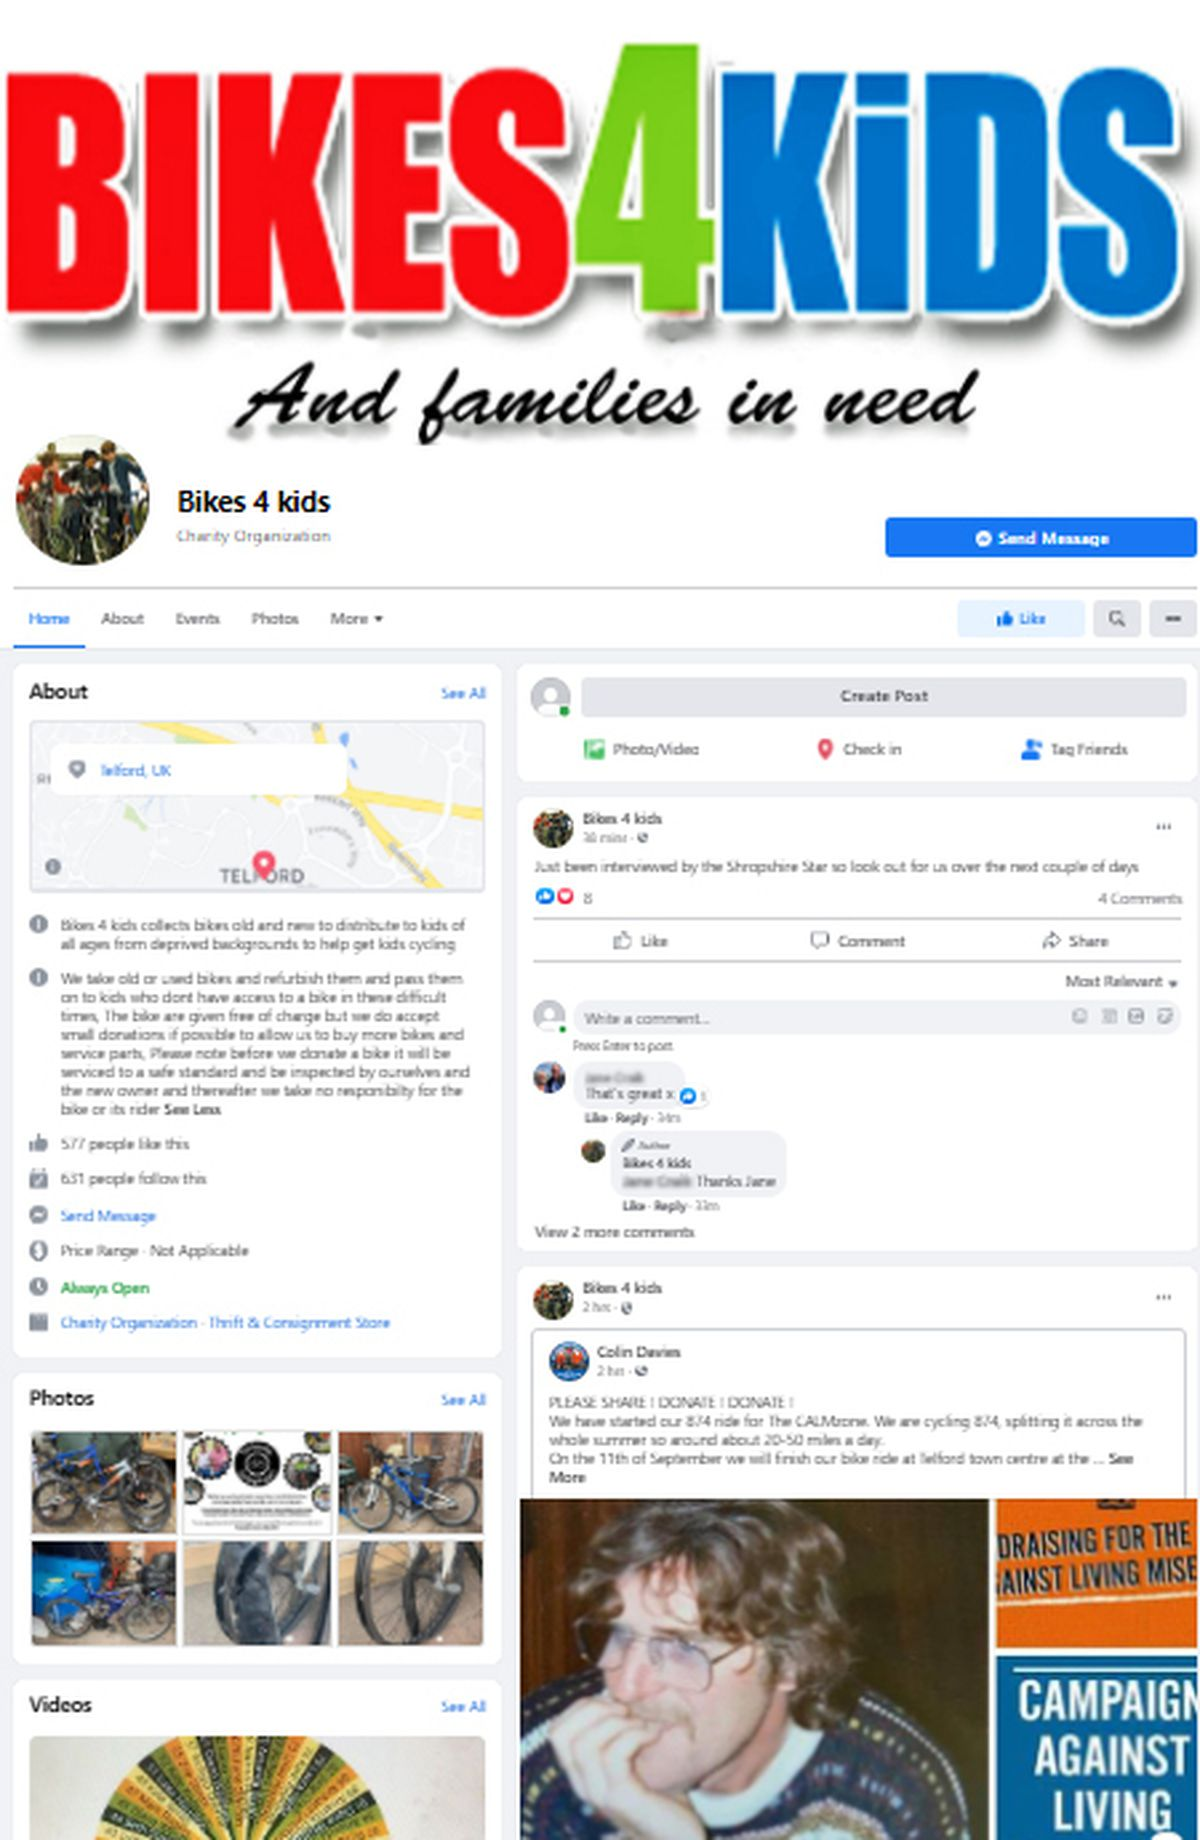 The Bikes 4 Kids page on Facebook